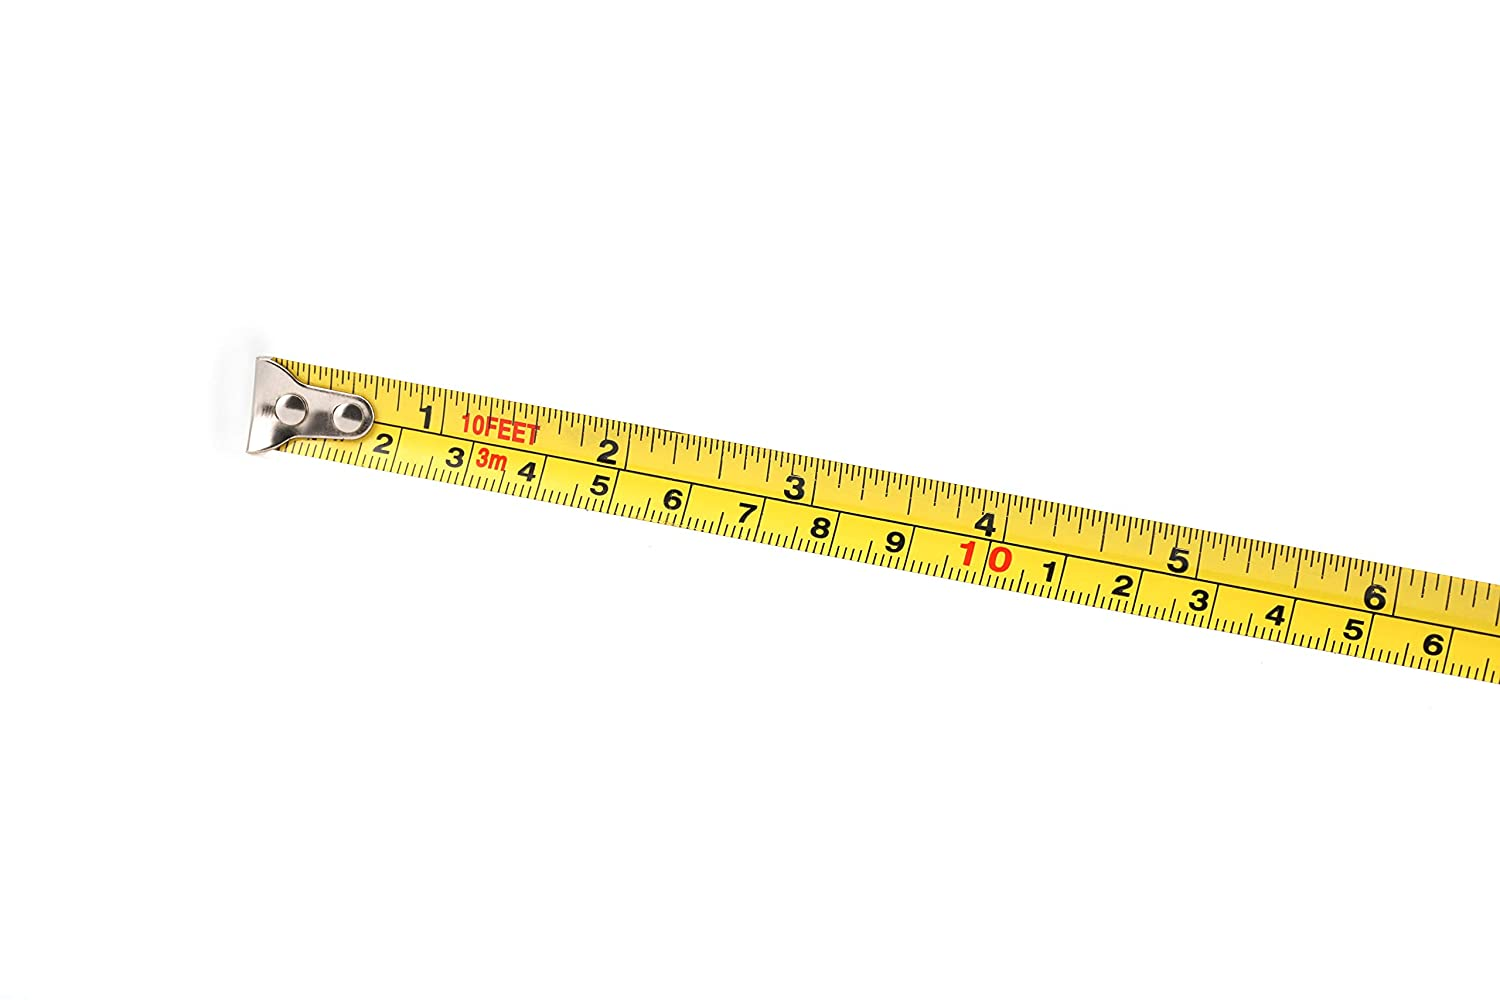 Metric and Inch Scale 3 Pack Tape Measure 10FT//3M By HEIKIO Portable Measuring Tape H17005 Sturdy Mark for Easily Reading